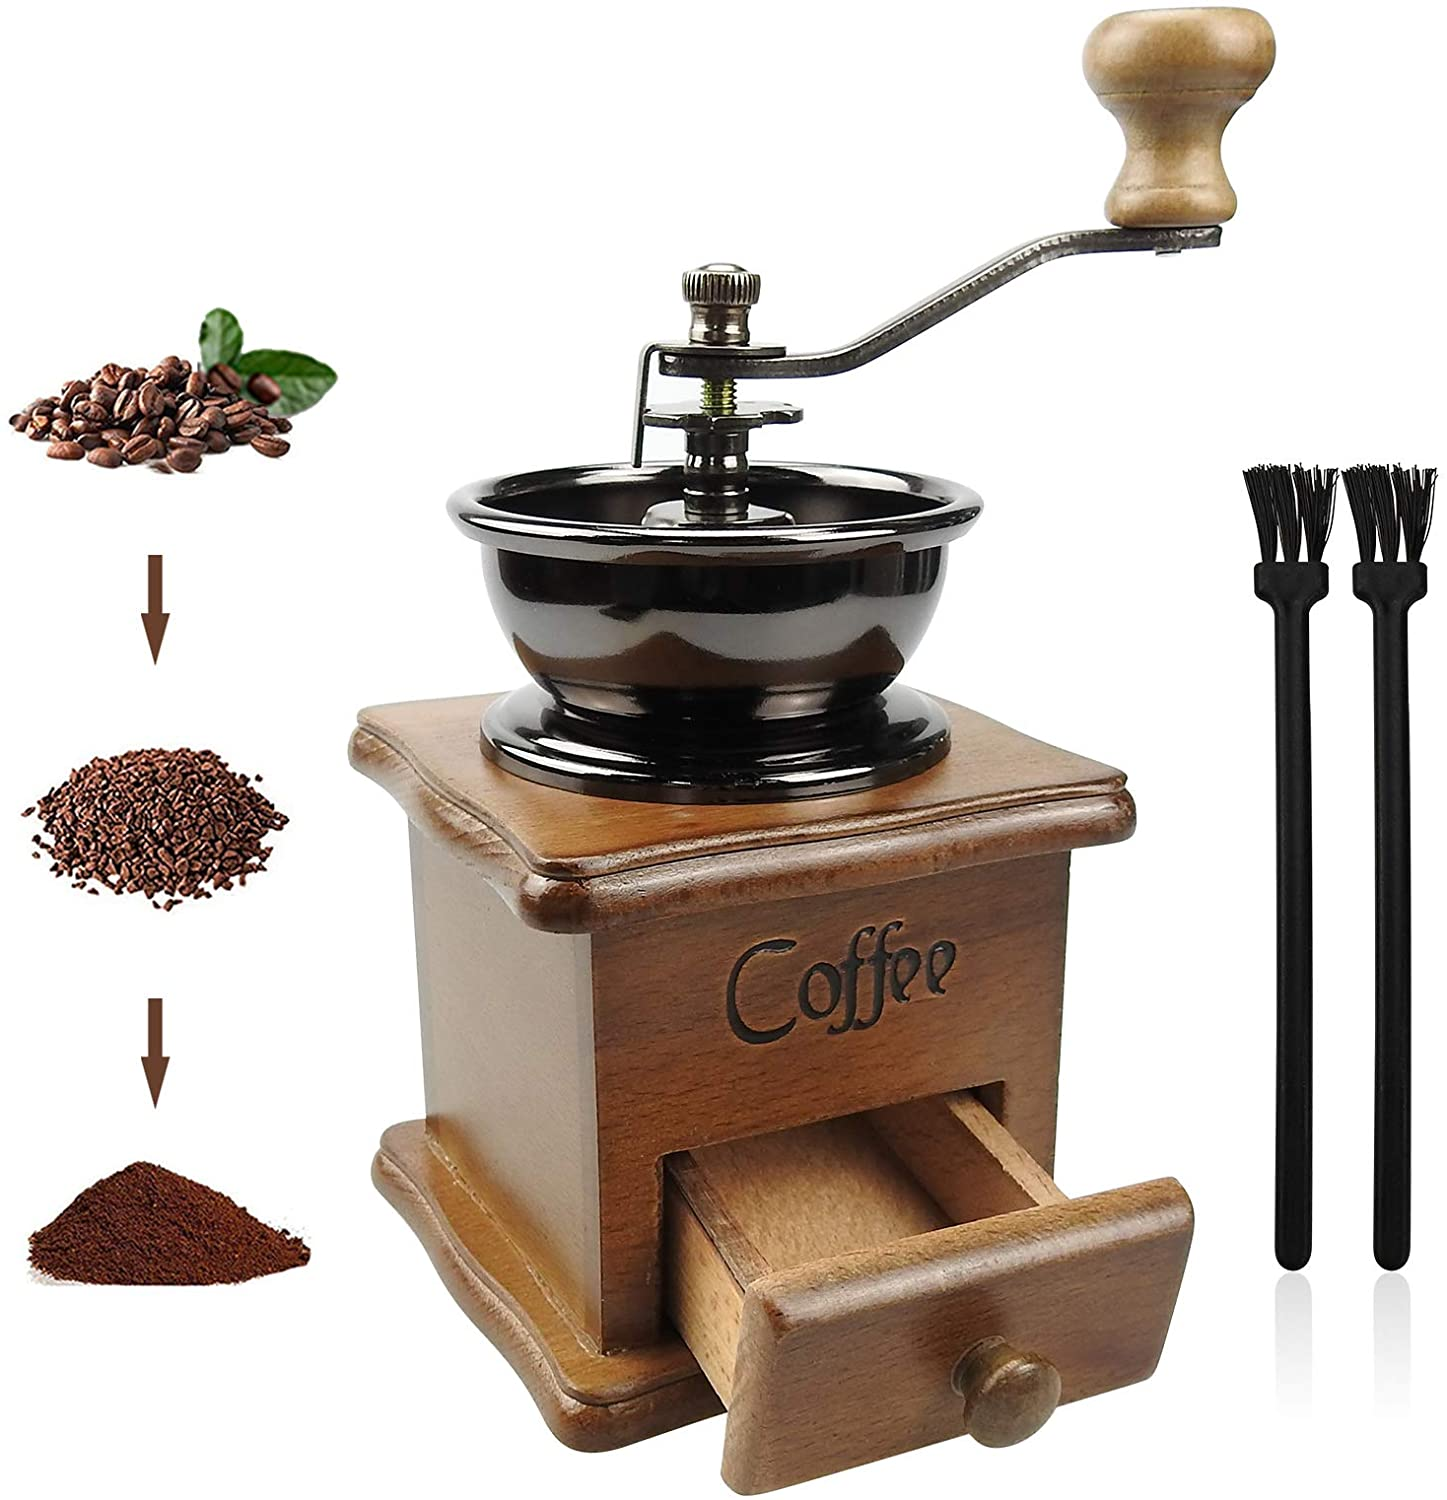 Manual Coffee Grinder Vintage Hand depot Style Wooden Co Industry No. 1